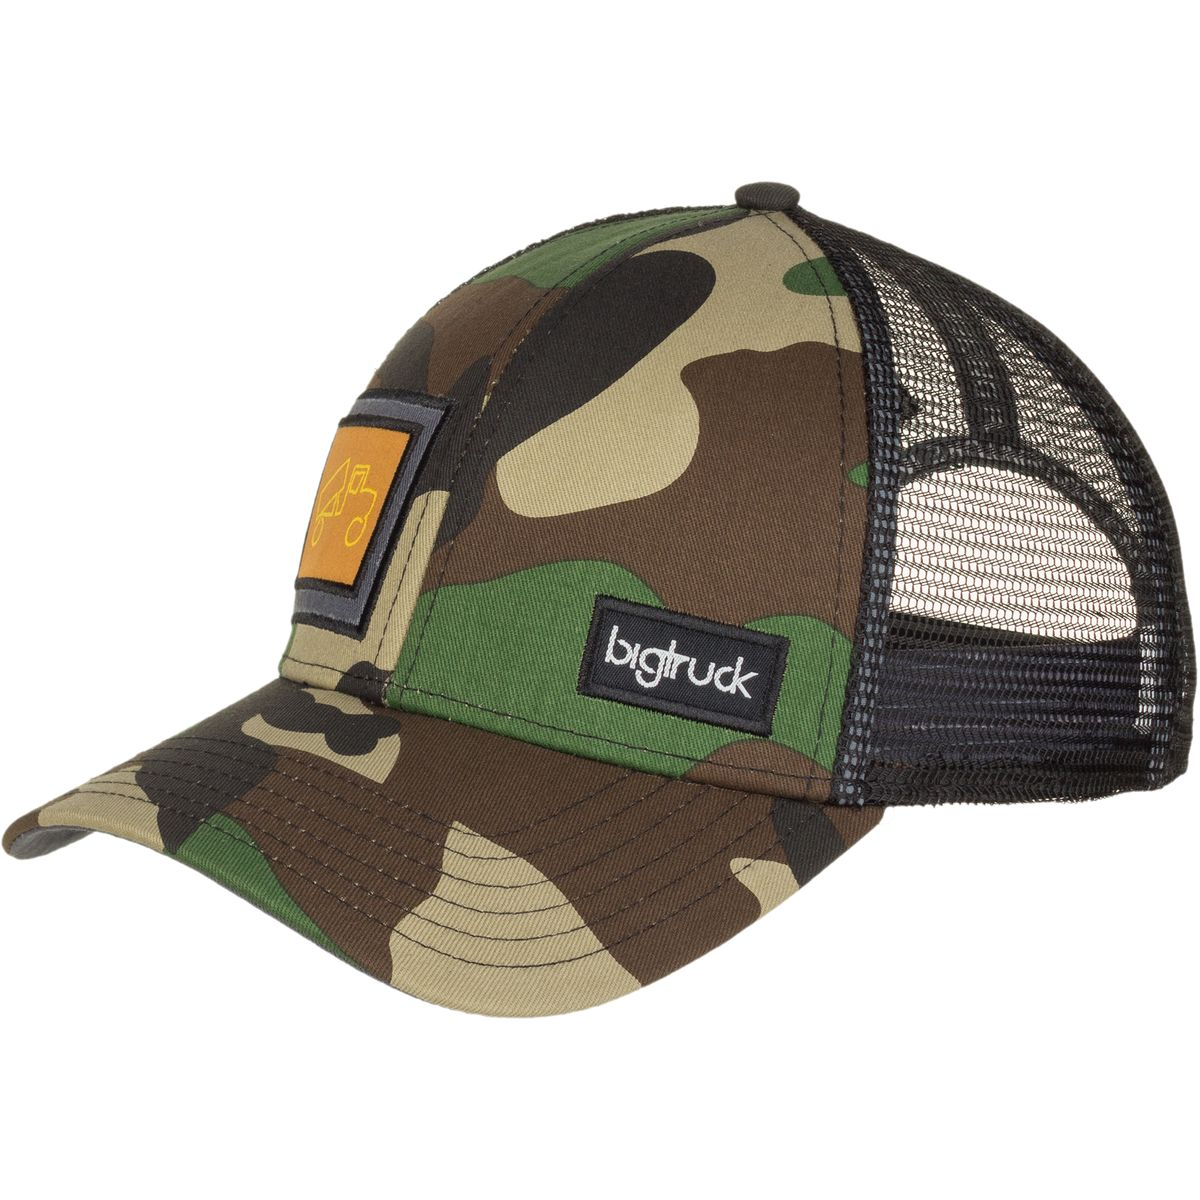 Bigtruck Brand Classic Trucker Hat Camo Grey One Size